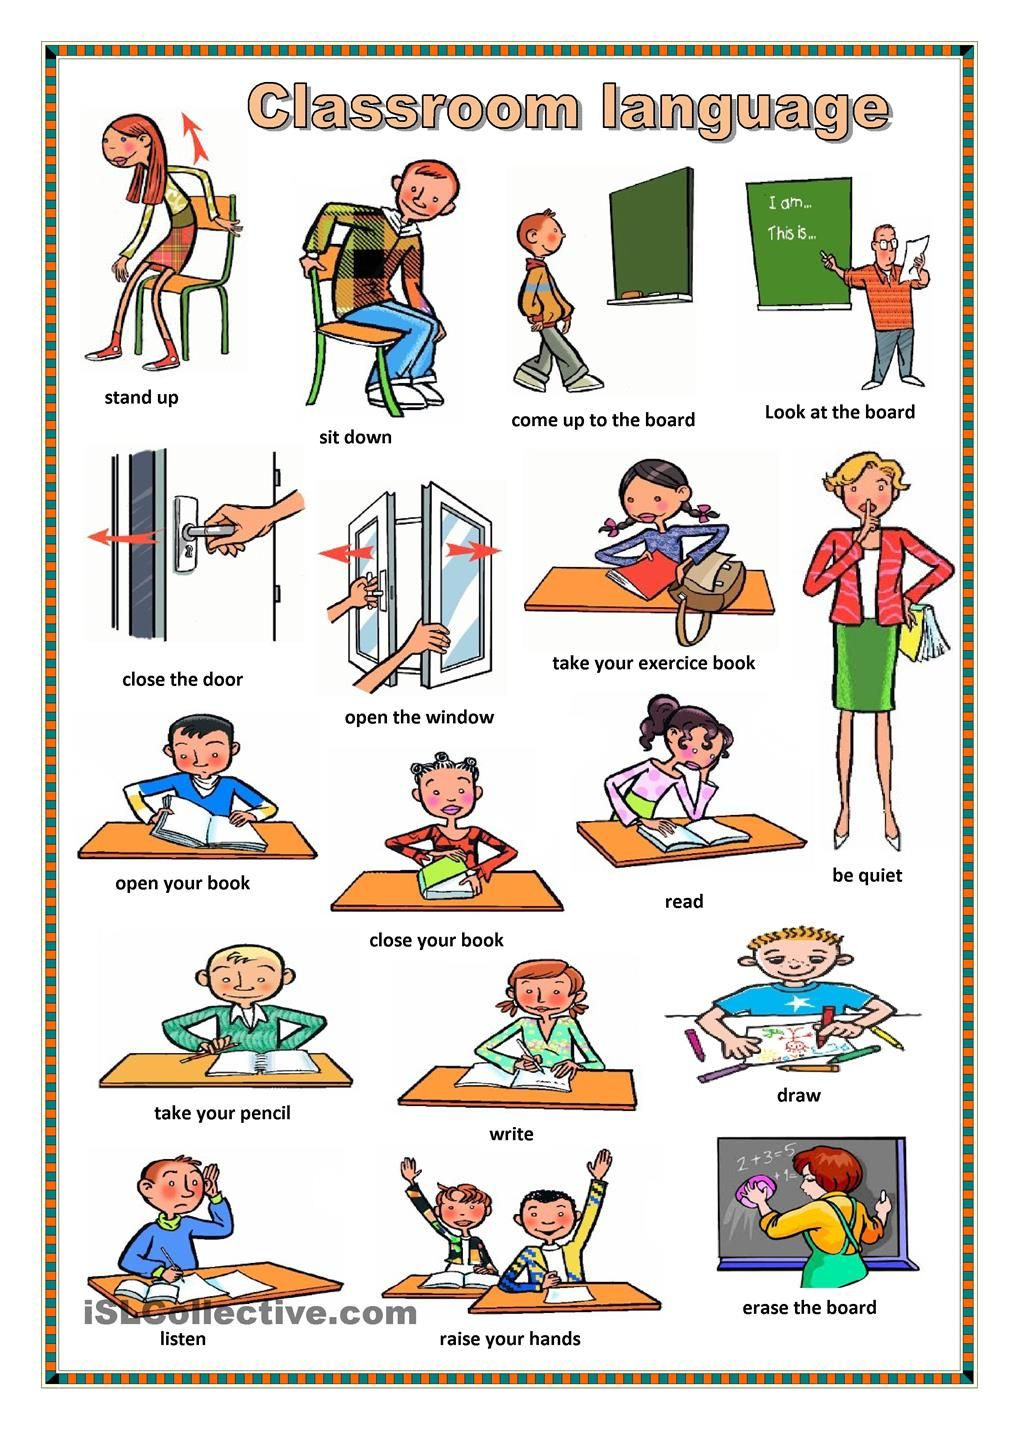 classroom english 3 teach classroom english early on in the second or third lesson students should be taught useful classroom english the students should thoroughly memorize and practice using these expressions.